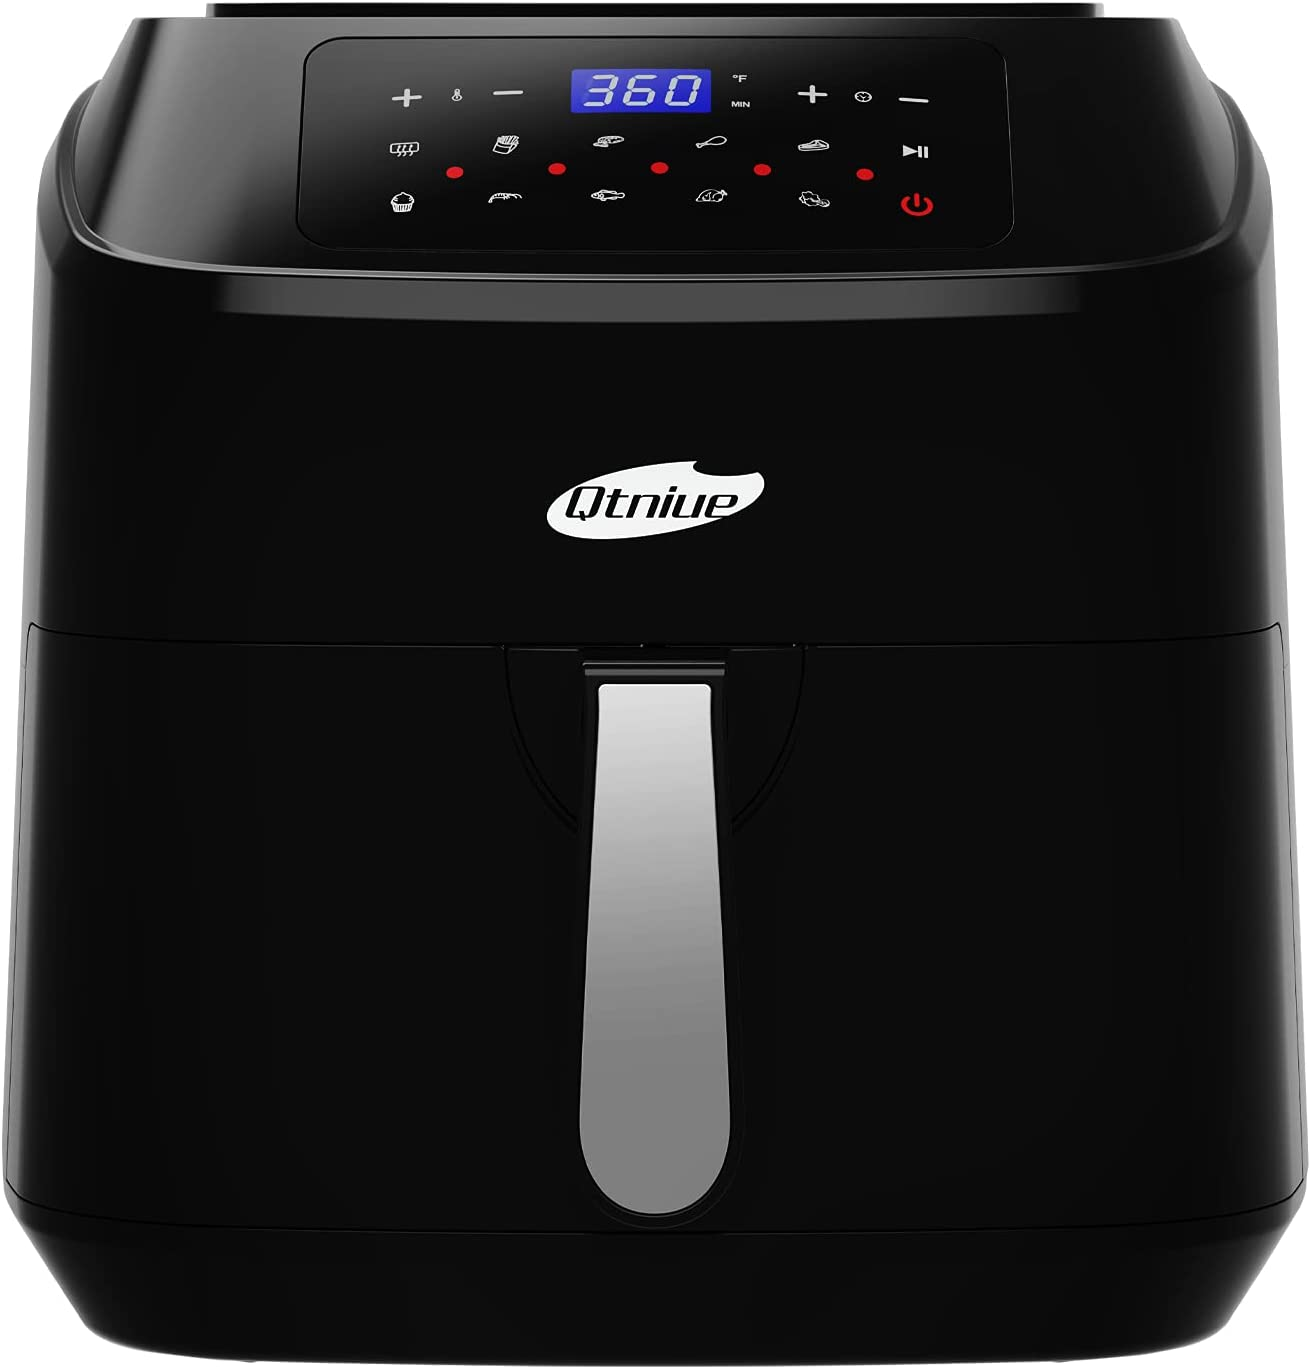 Air Fryer, Qtniue 8.0 Quart Electric Hot Oven, 10 Presets Electric Air Fryers Oven with Preheat, Touch Screen LED, Adjustable Time Temperature, Non-Stick Stainless Steel, Dishwasher Safe BPA Free-580D